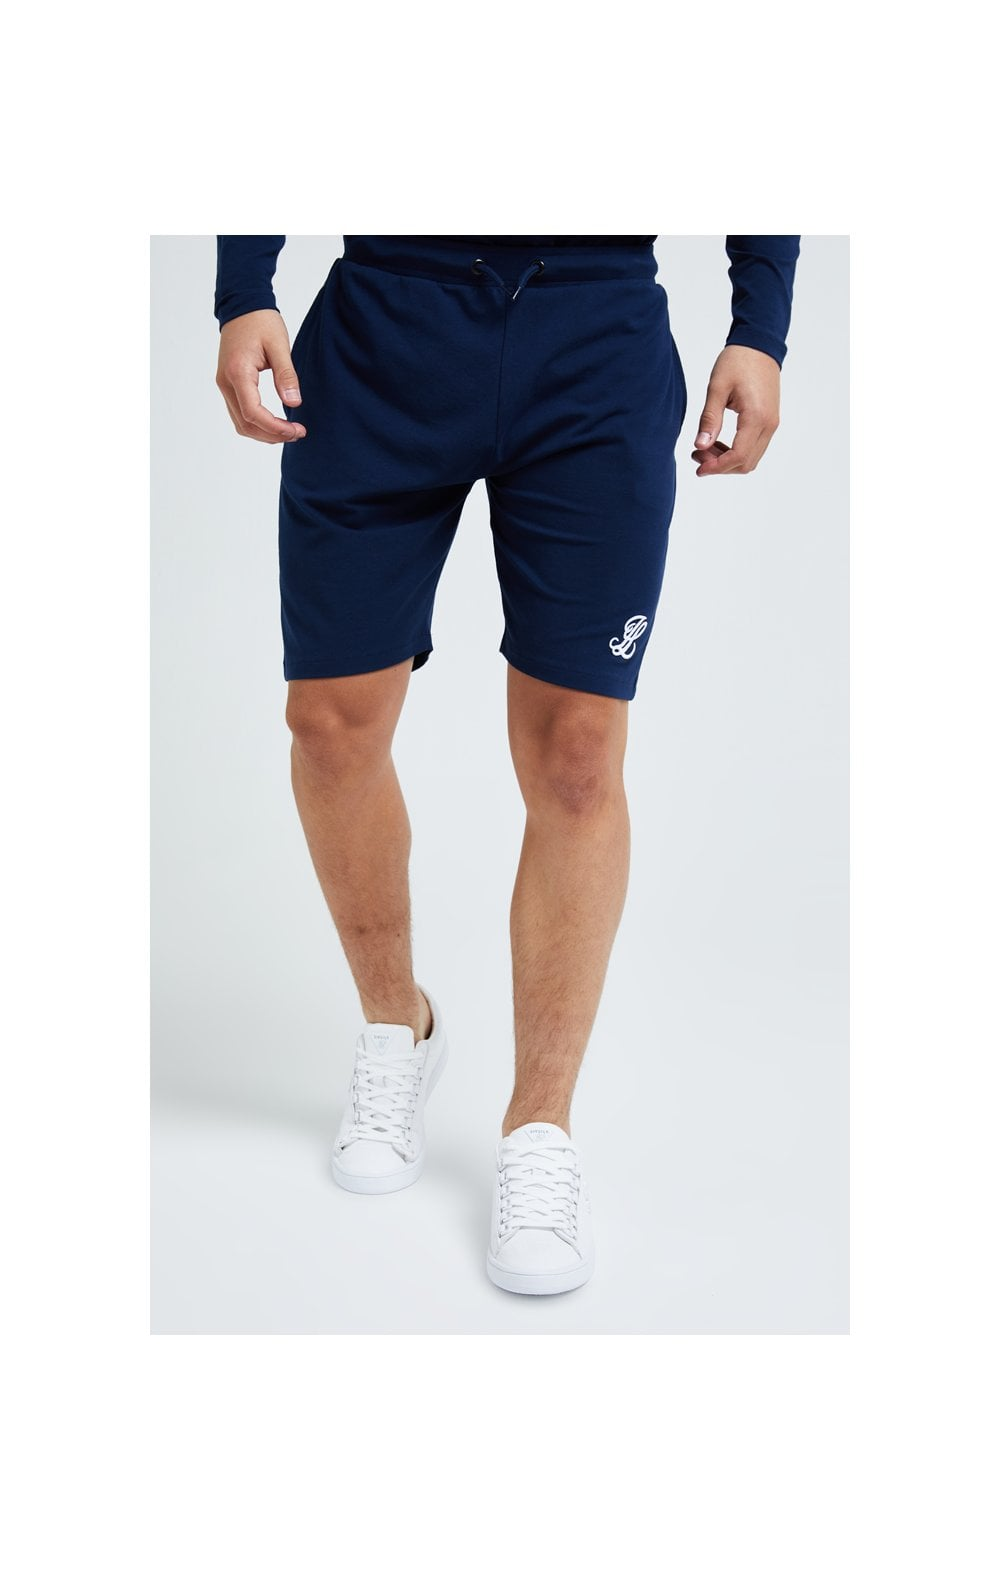 Illusive London Core Jersey Shorts - Navy